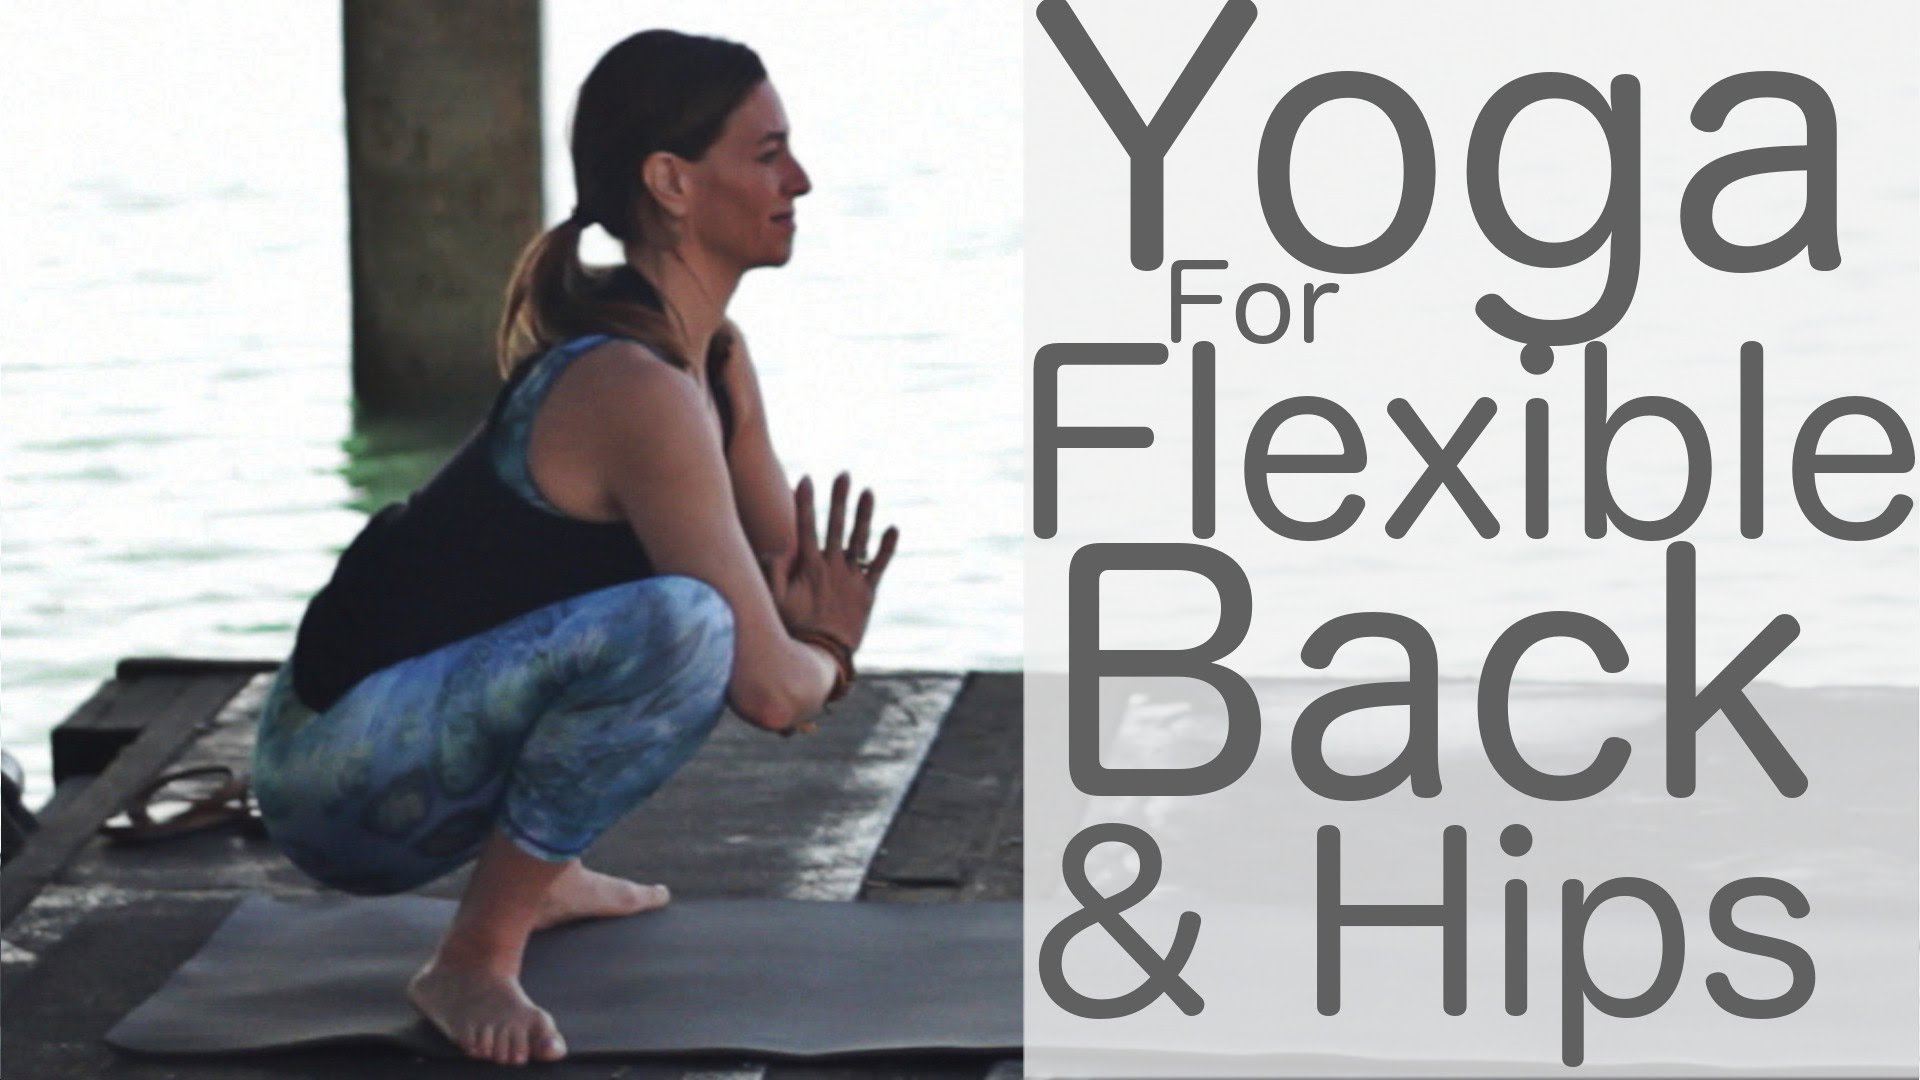 Yoga for Flexibility: Upper Back and Hips with Lesley Fightmaster